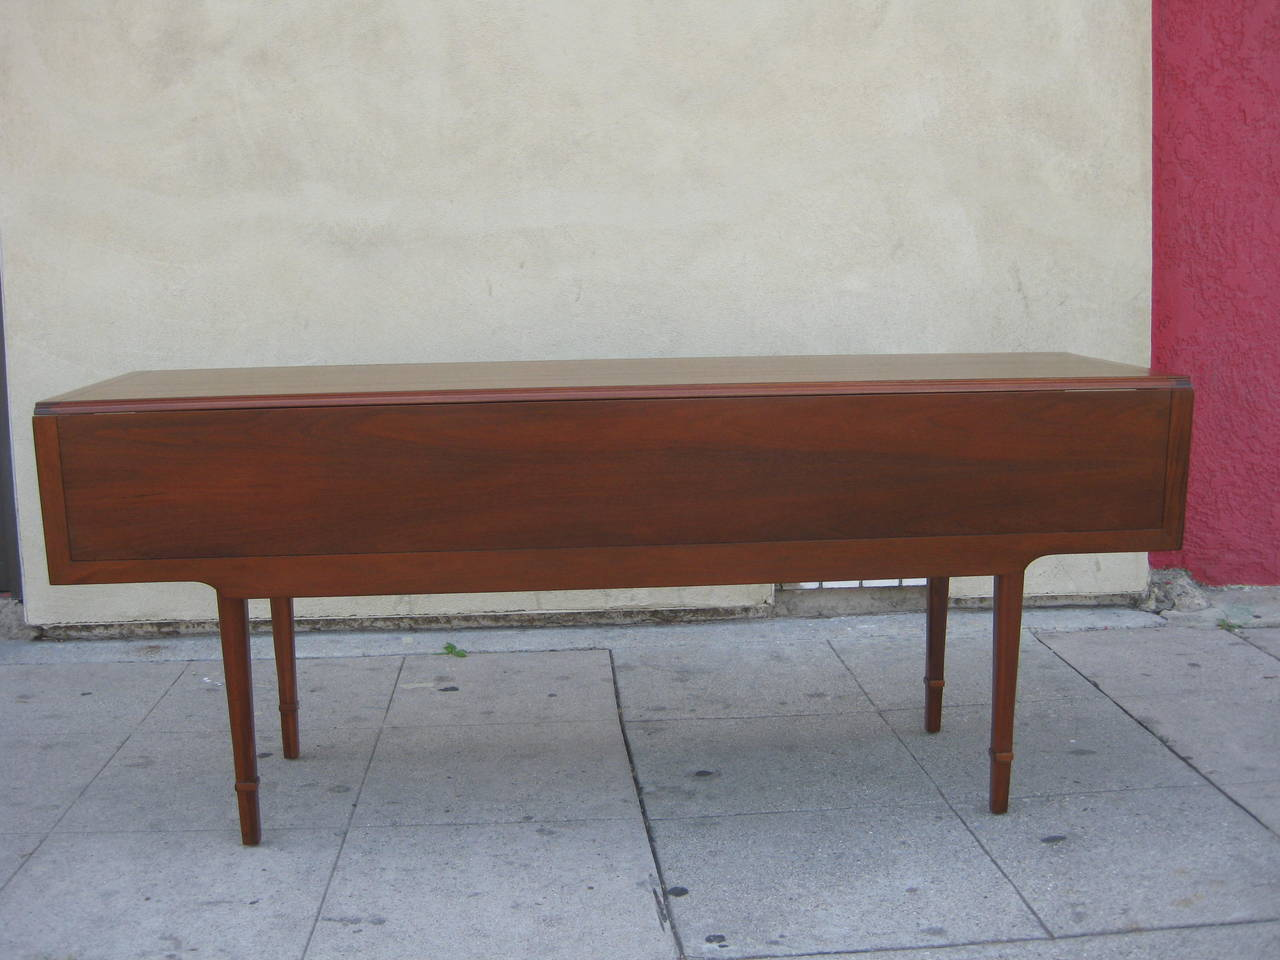 Walnut Drop Leaf Dining or Console Table by Drexel at 1stdibs : IMG2370l from www.1stdibs.com size 1280 x 960 jpeg 113kB